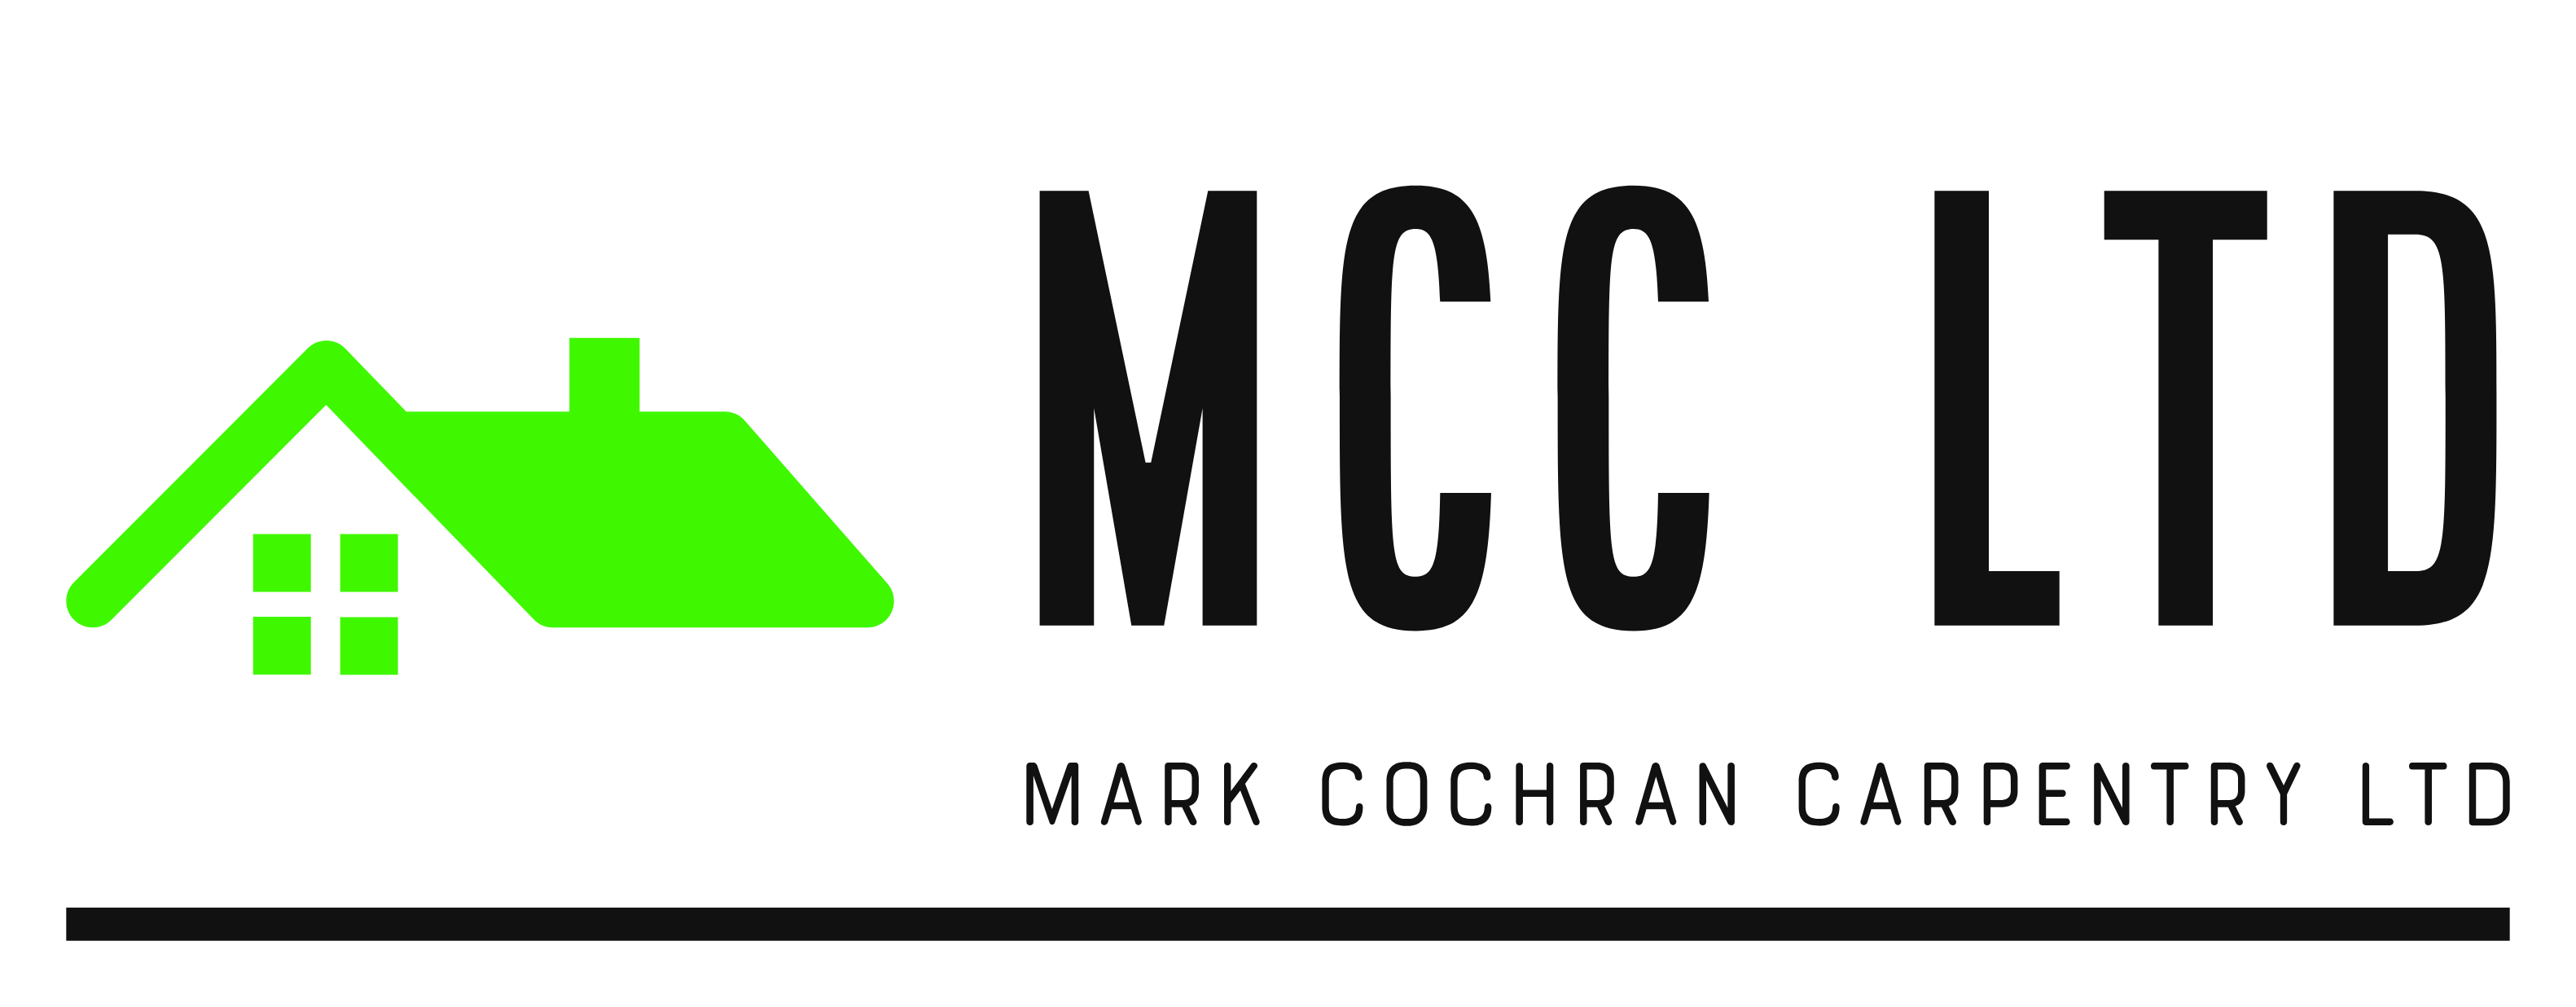 Mark Cochran Carpentry Ltd Logo